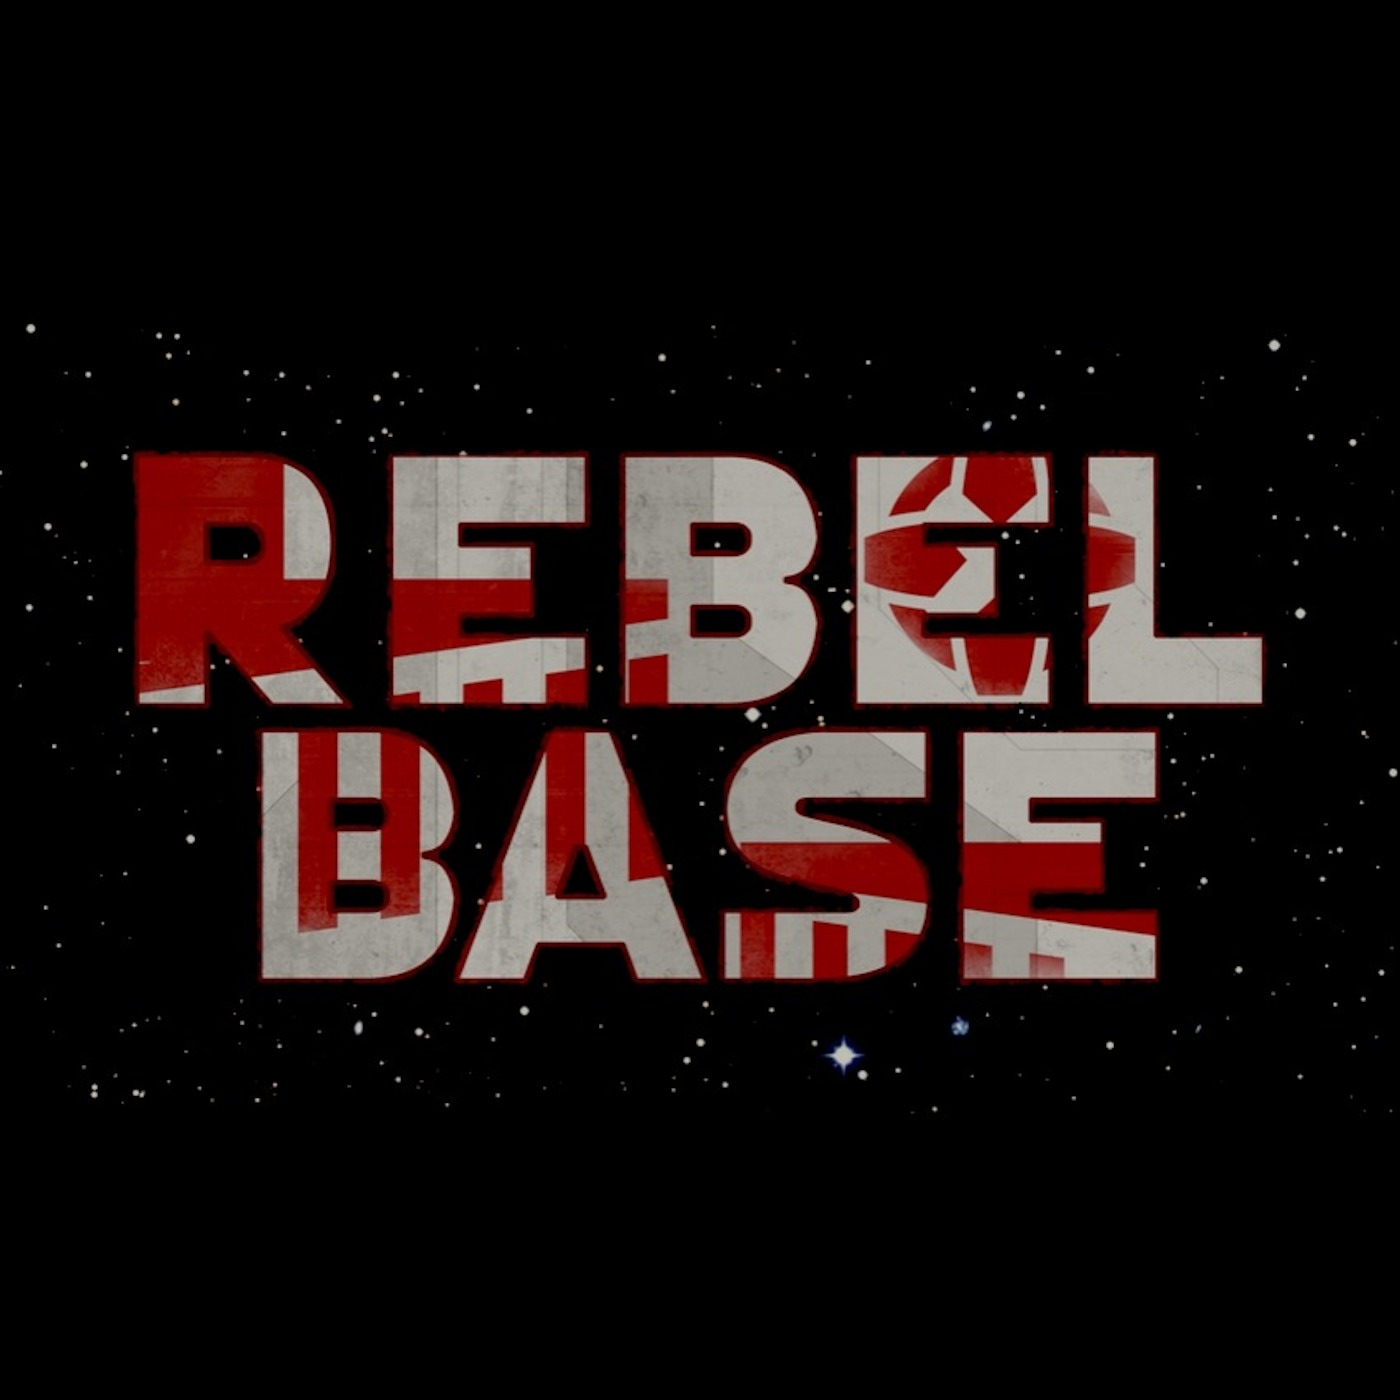 IGN's Rebel Base